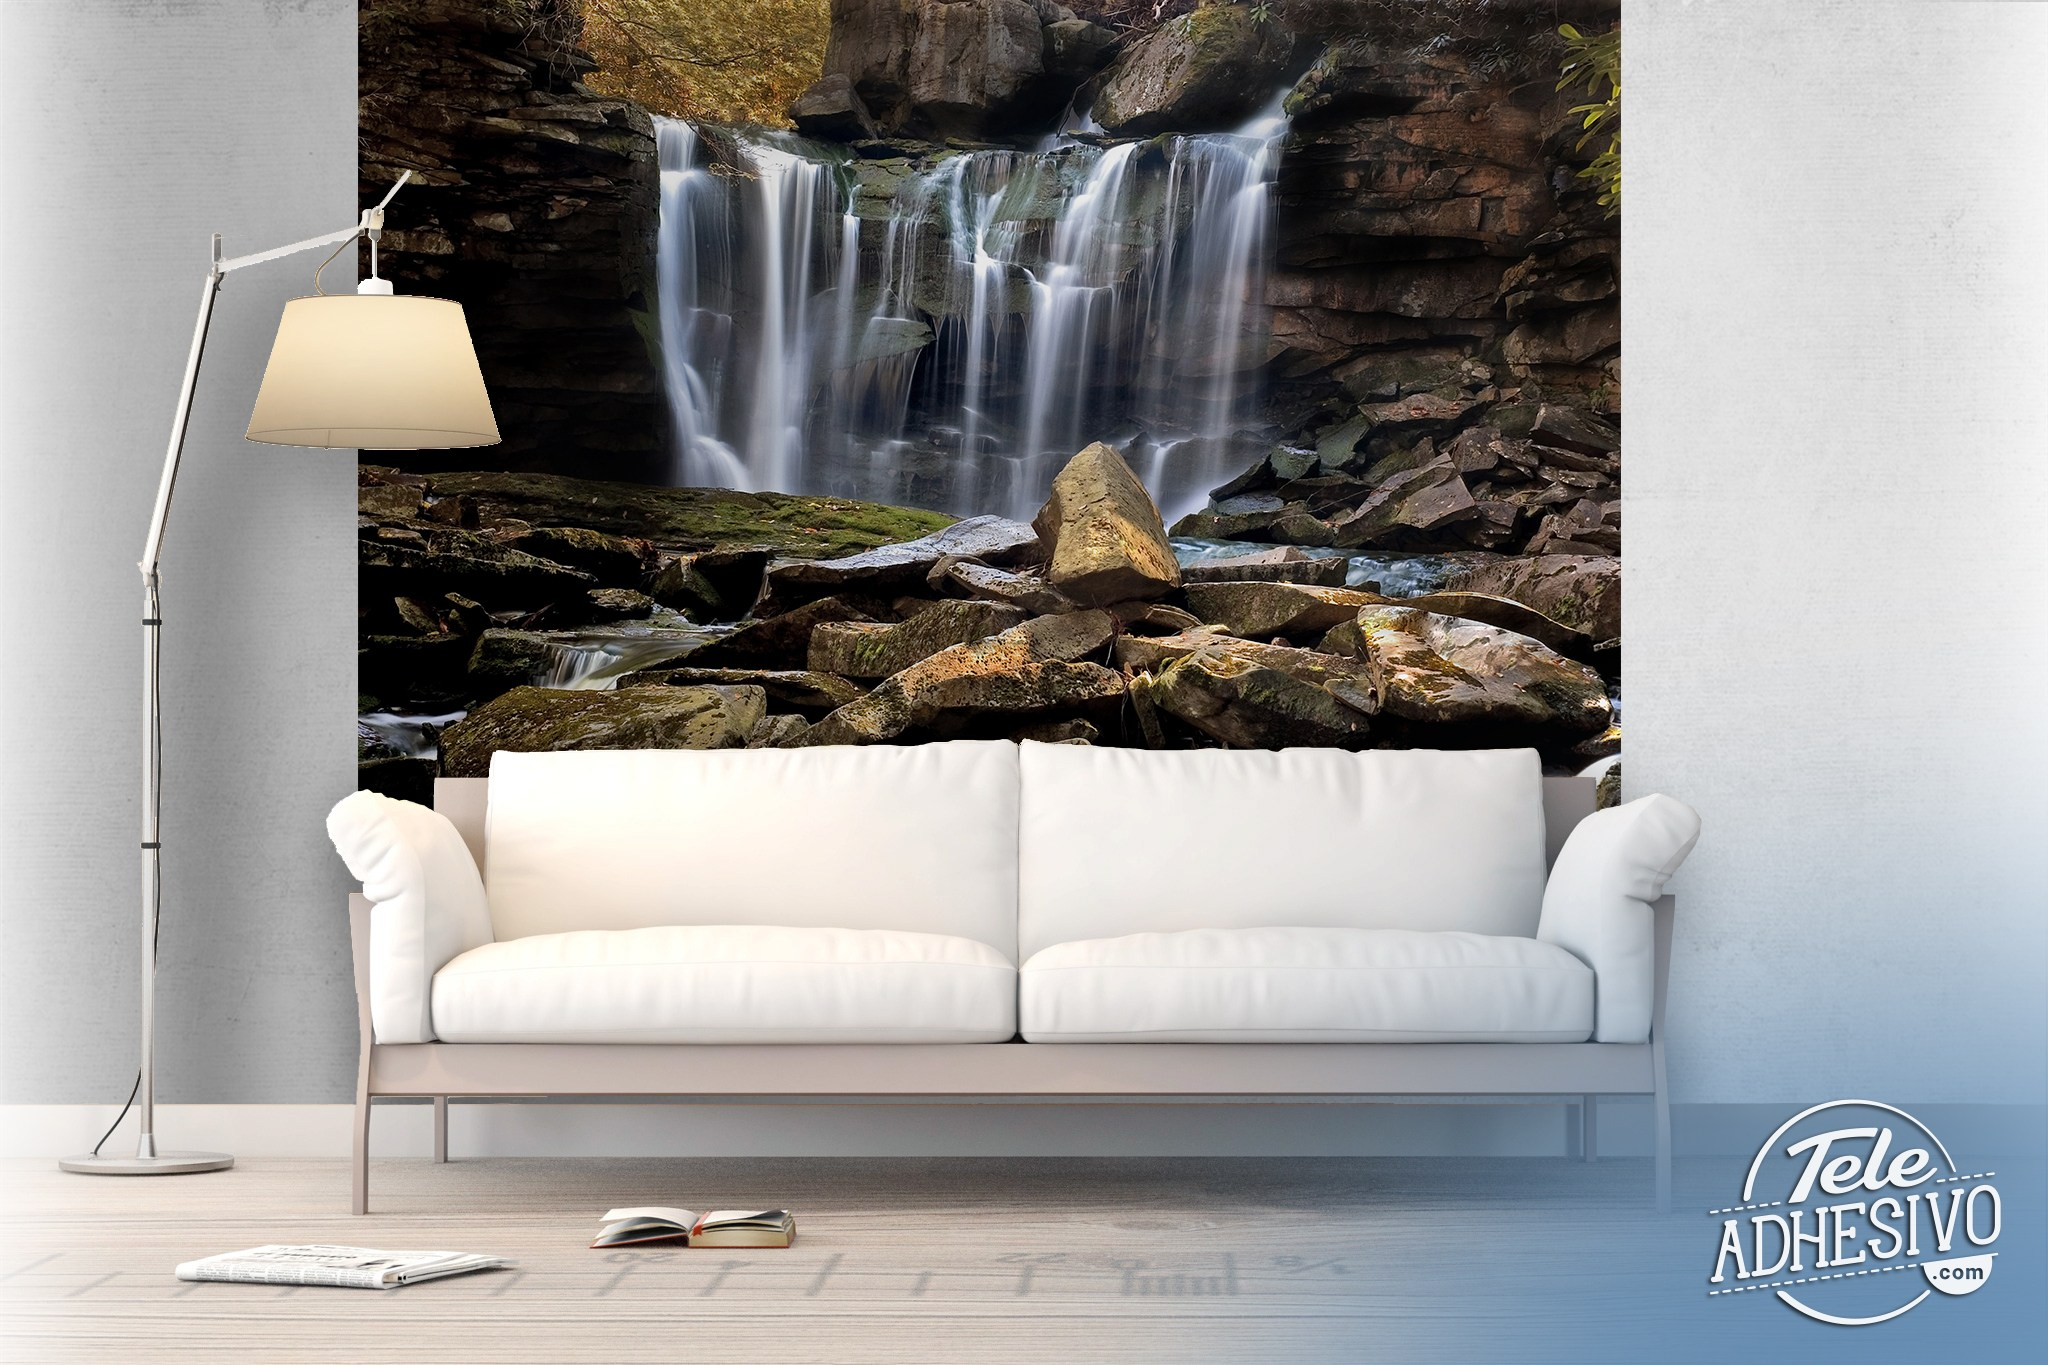 Wall Murals: Small mountain waterfall